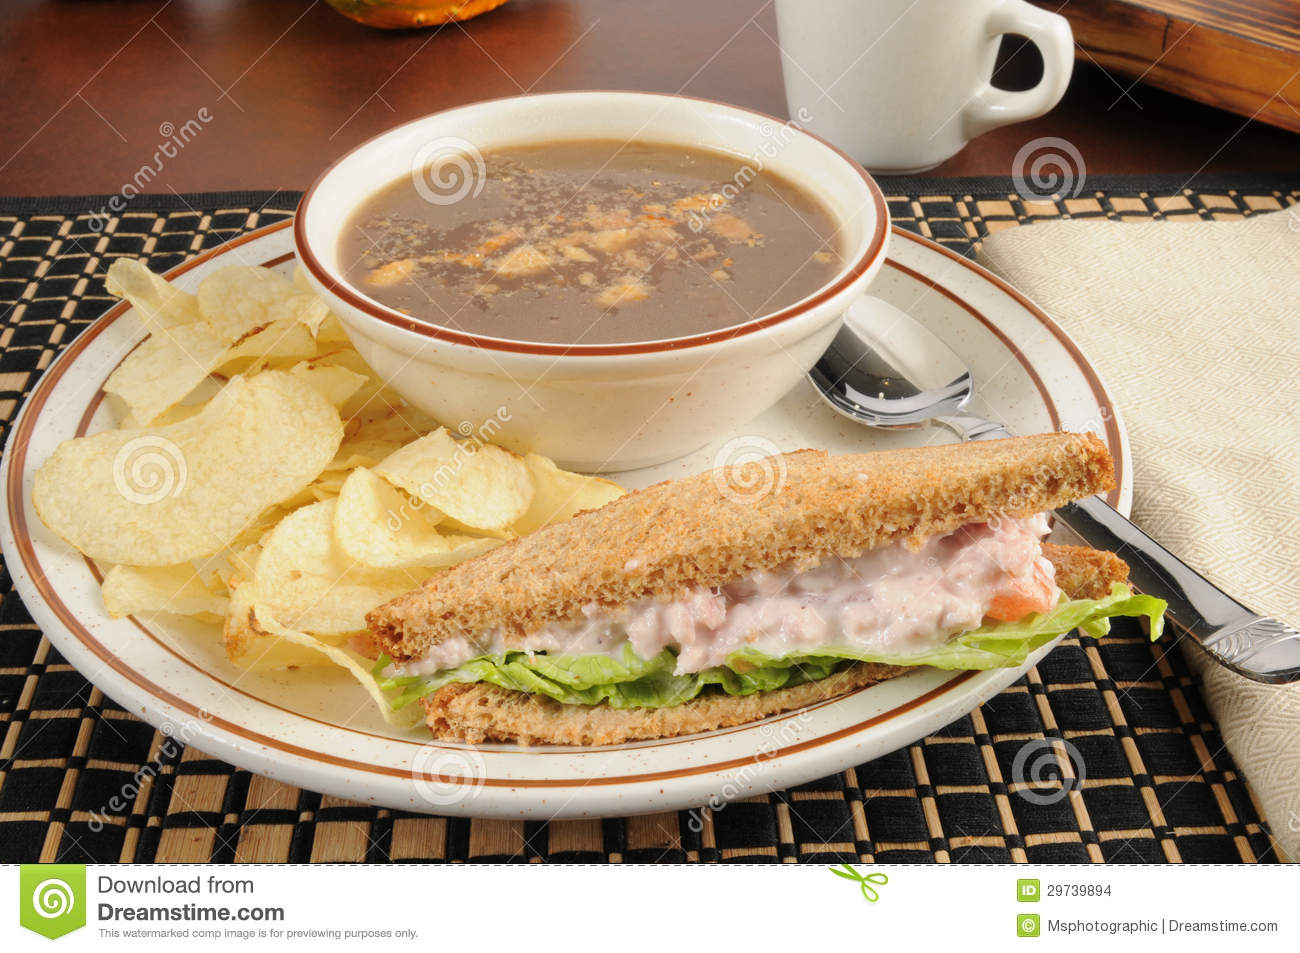 Ham Salad Sandwich With Onion Soup Stock Images - Image: 29739894